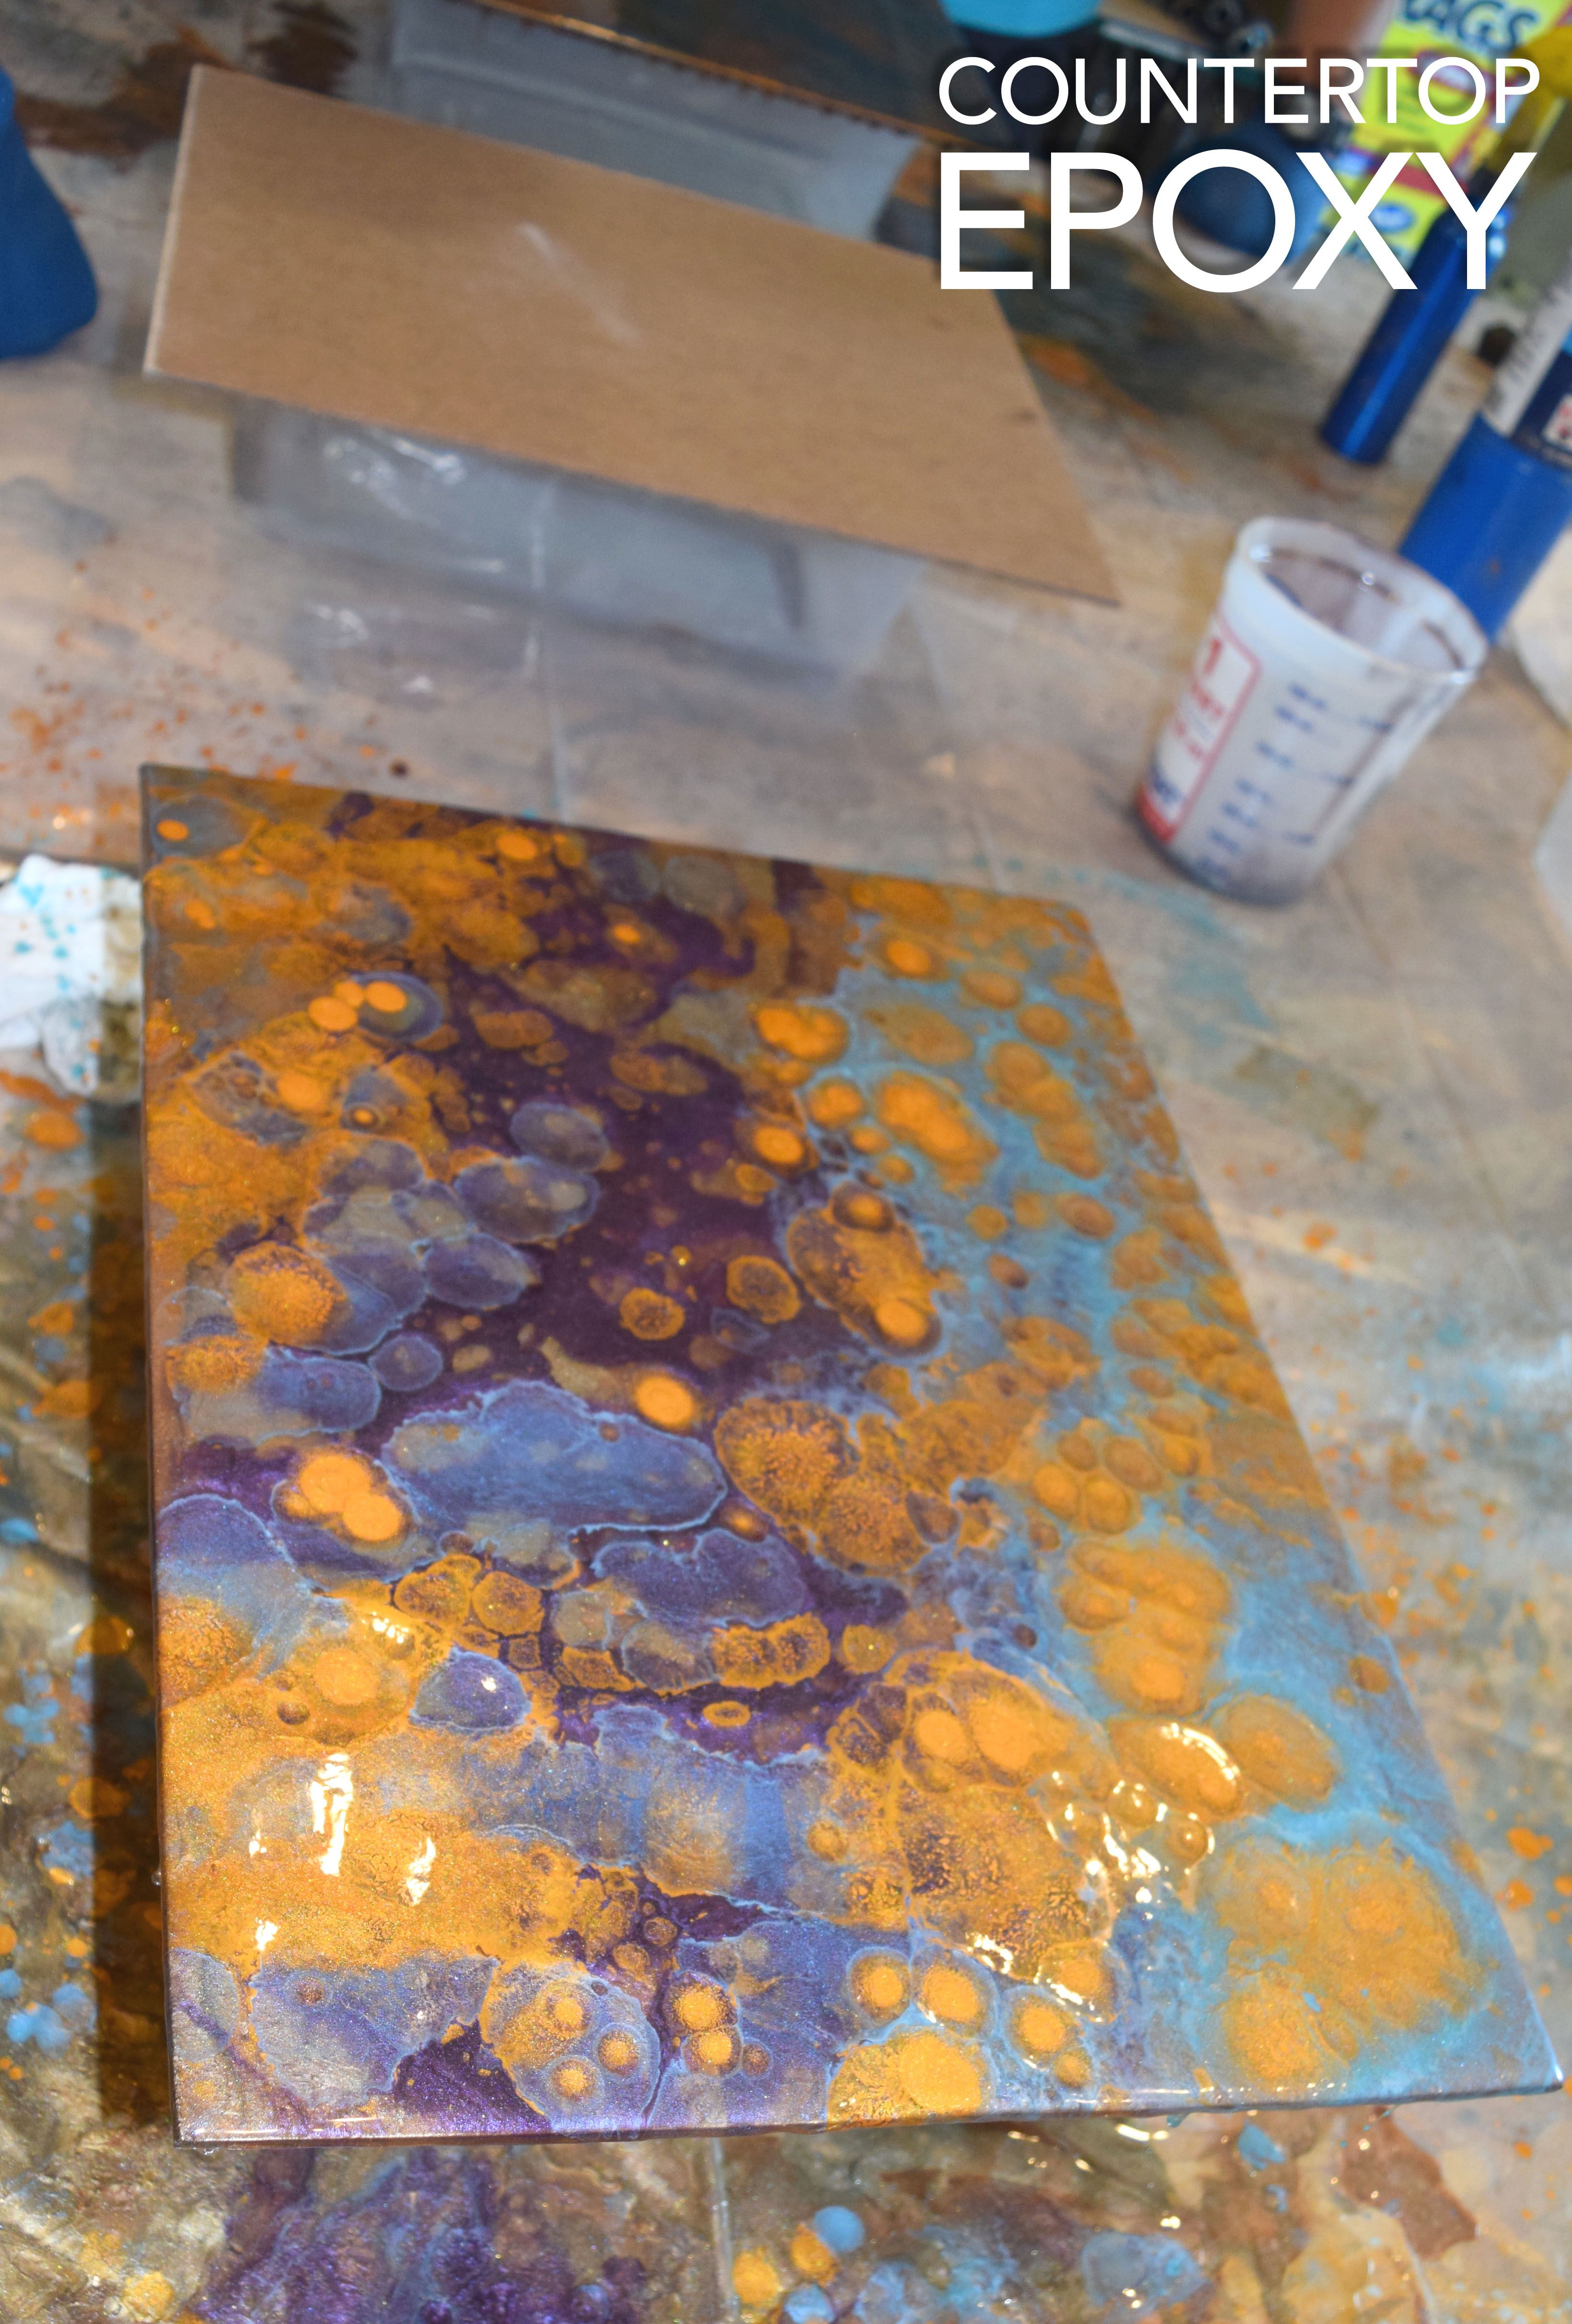 Workshop Countertop Purple Turquoise And Gold Resin Sample Created At The